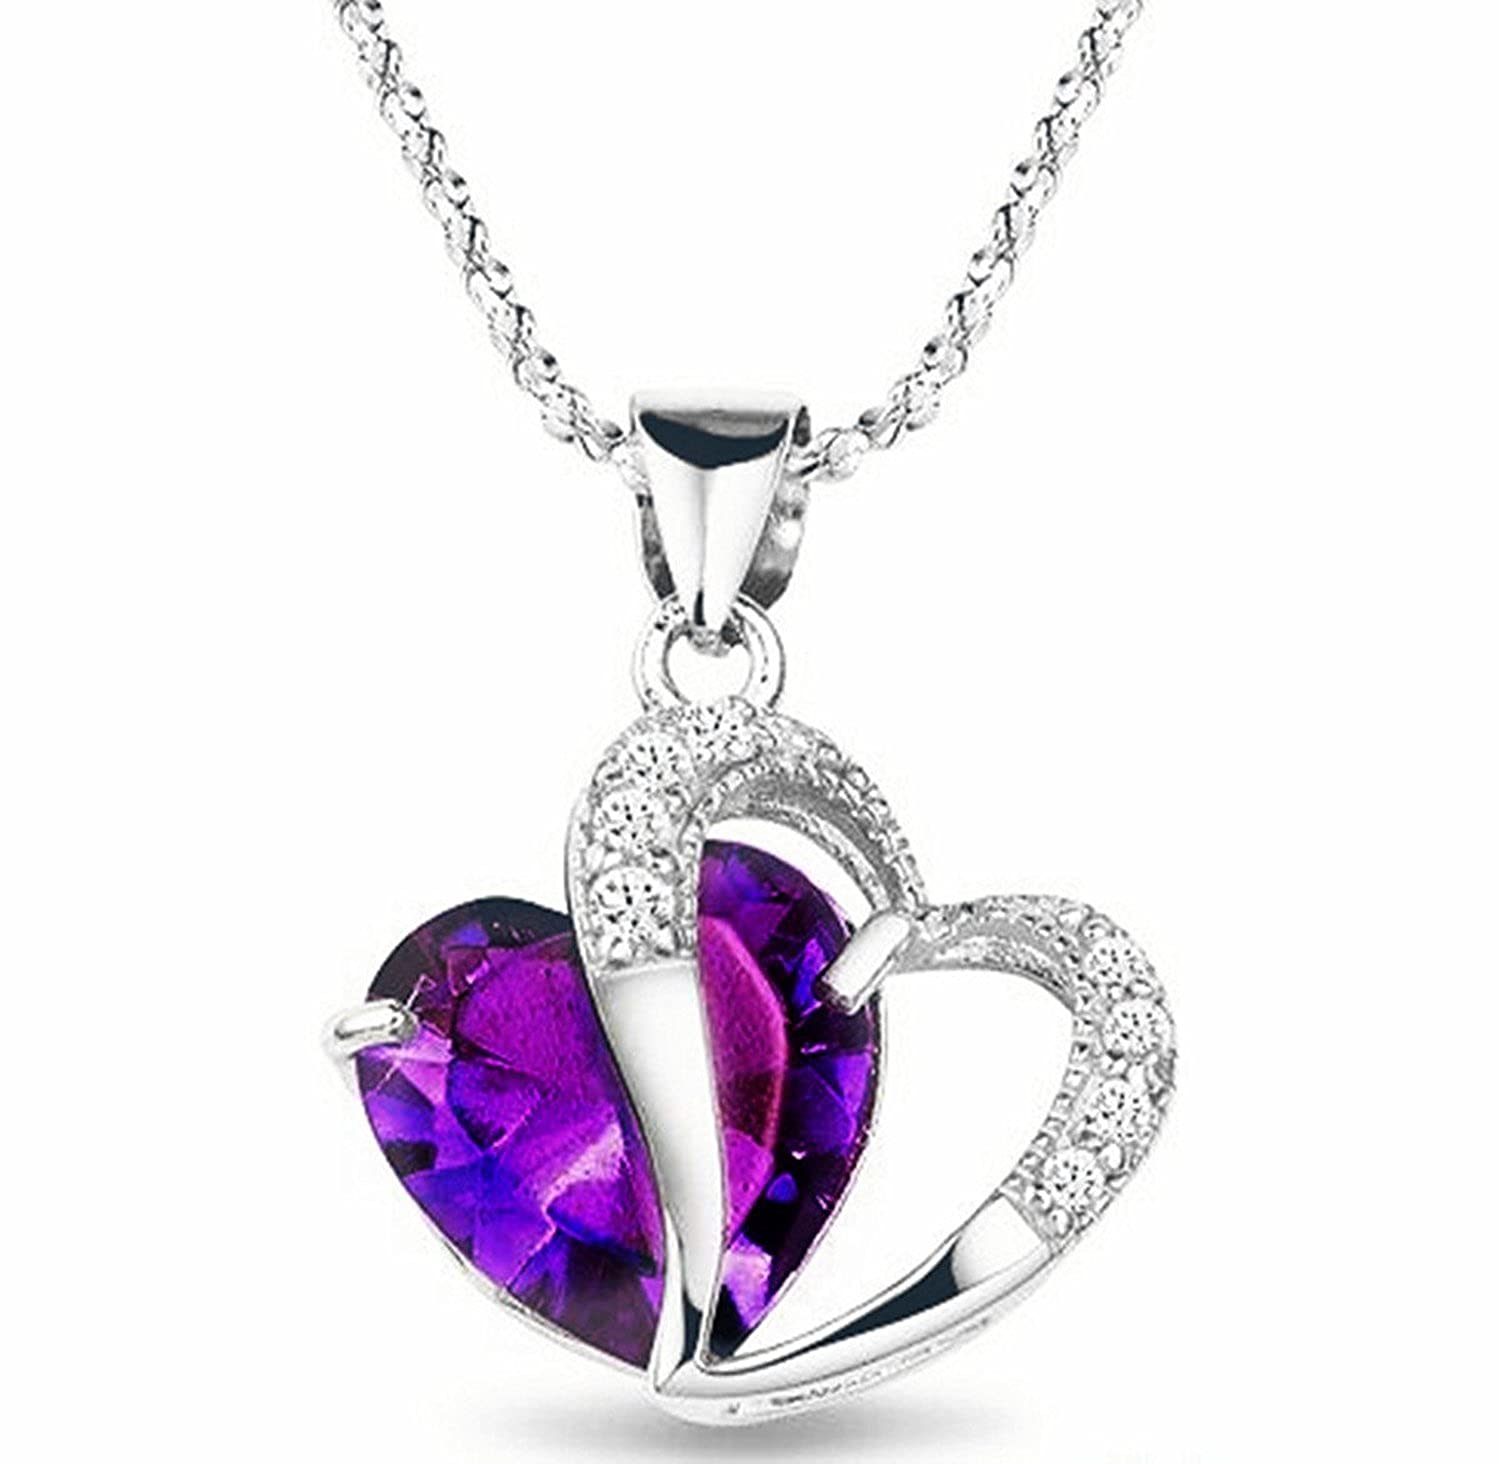 pendant s sterling angel purple silver diamond teardrop shape tears product detail